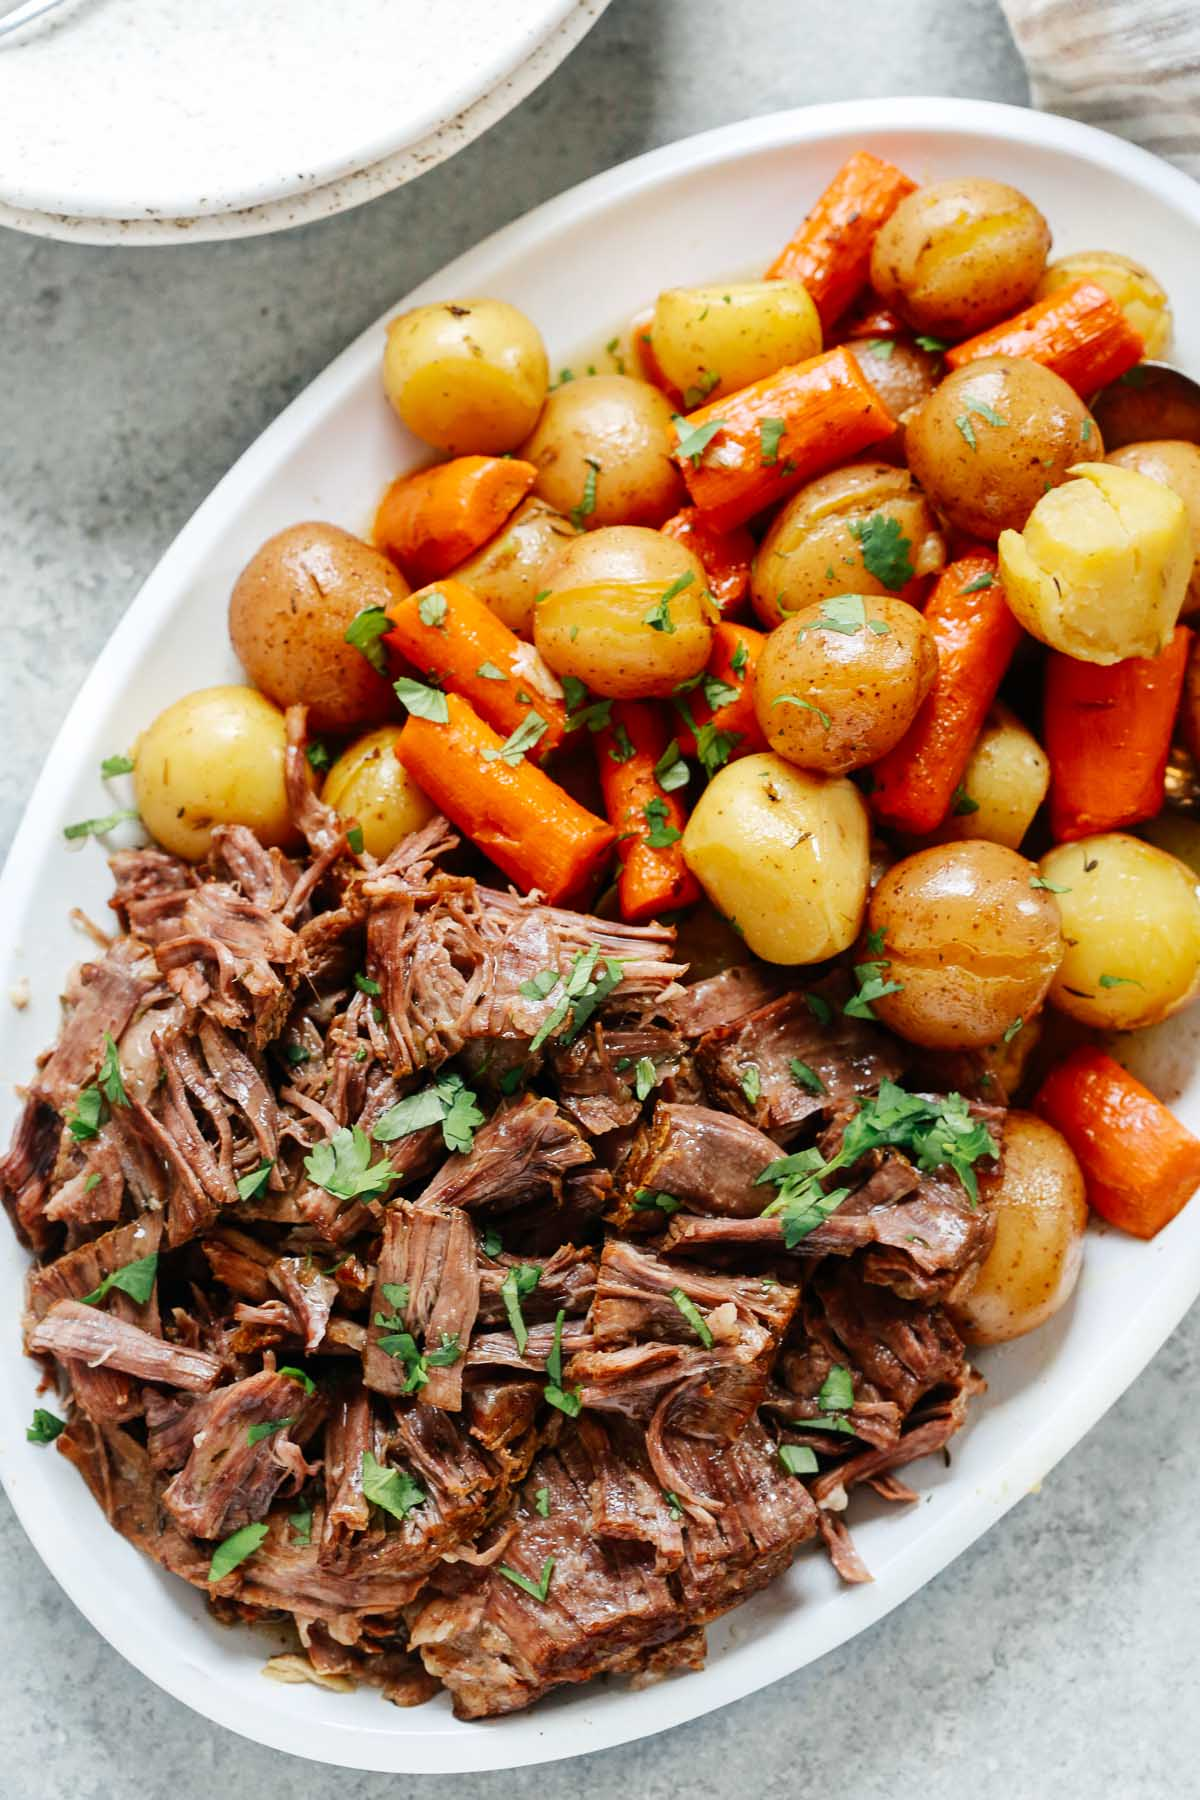 Pressure cooker pot roast recipe in a white serving plate with carrots and potatoes.